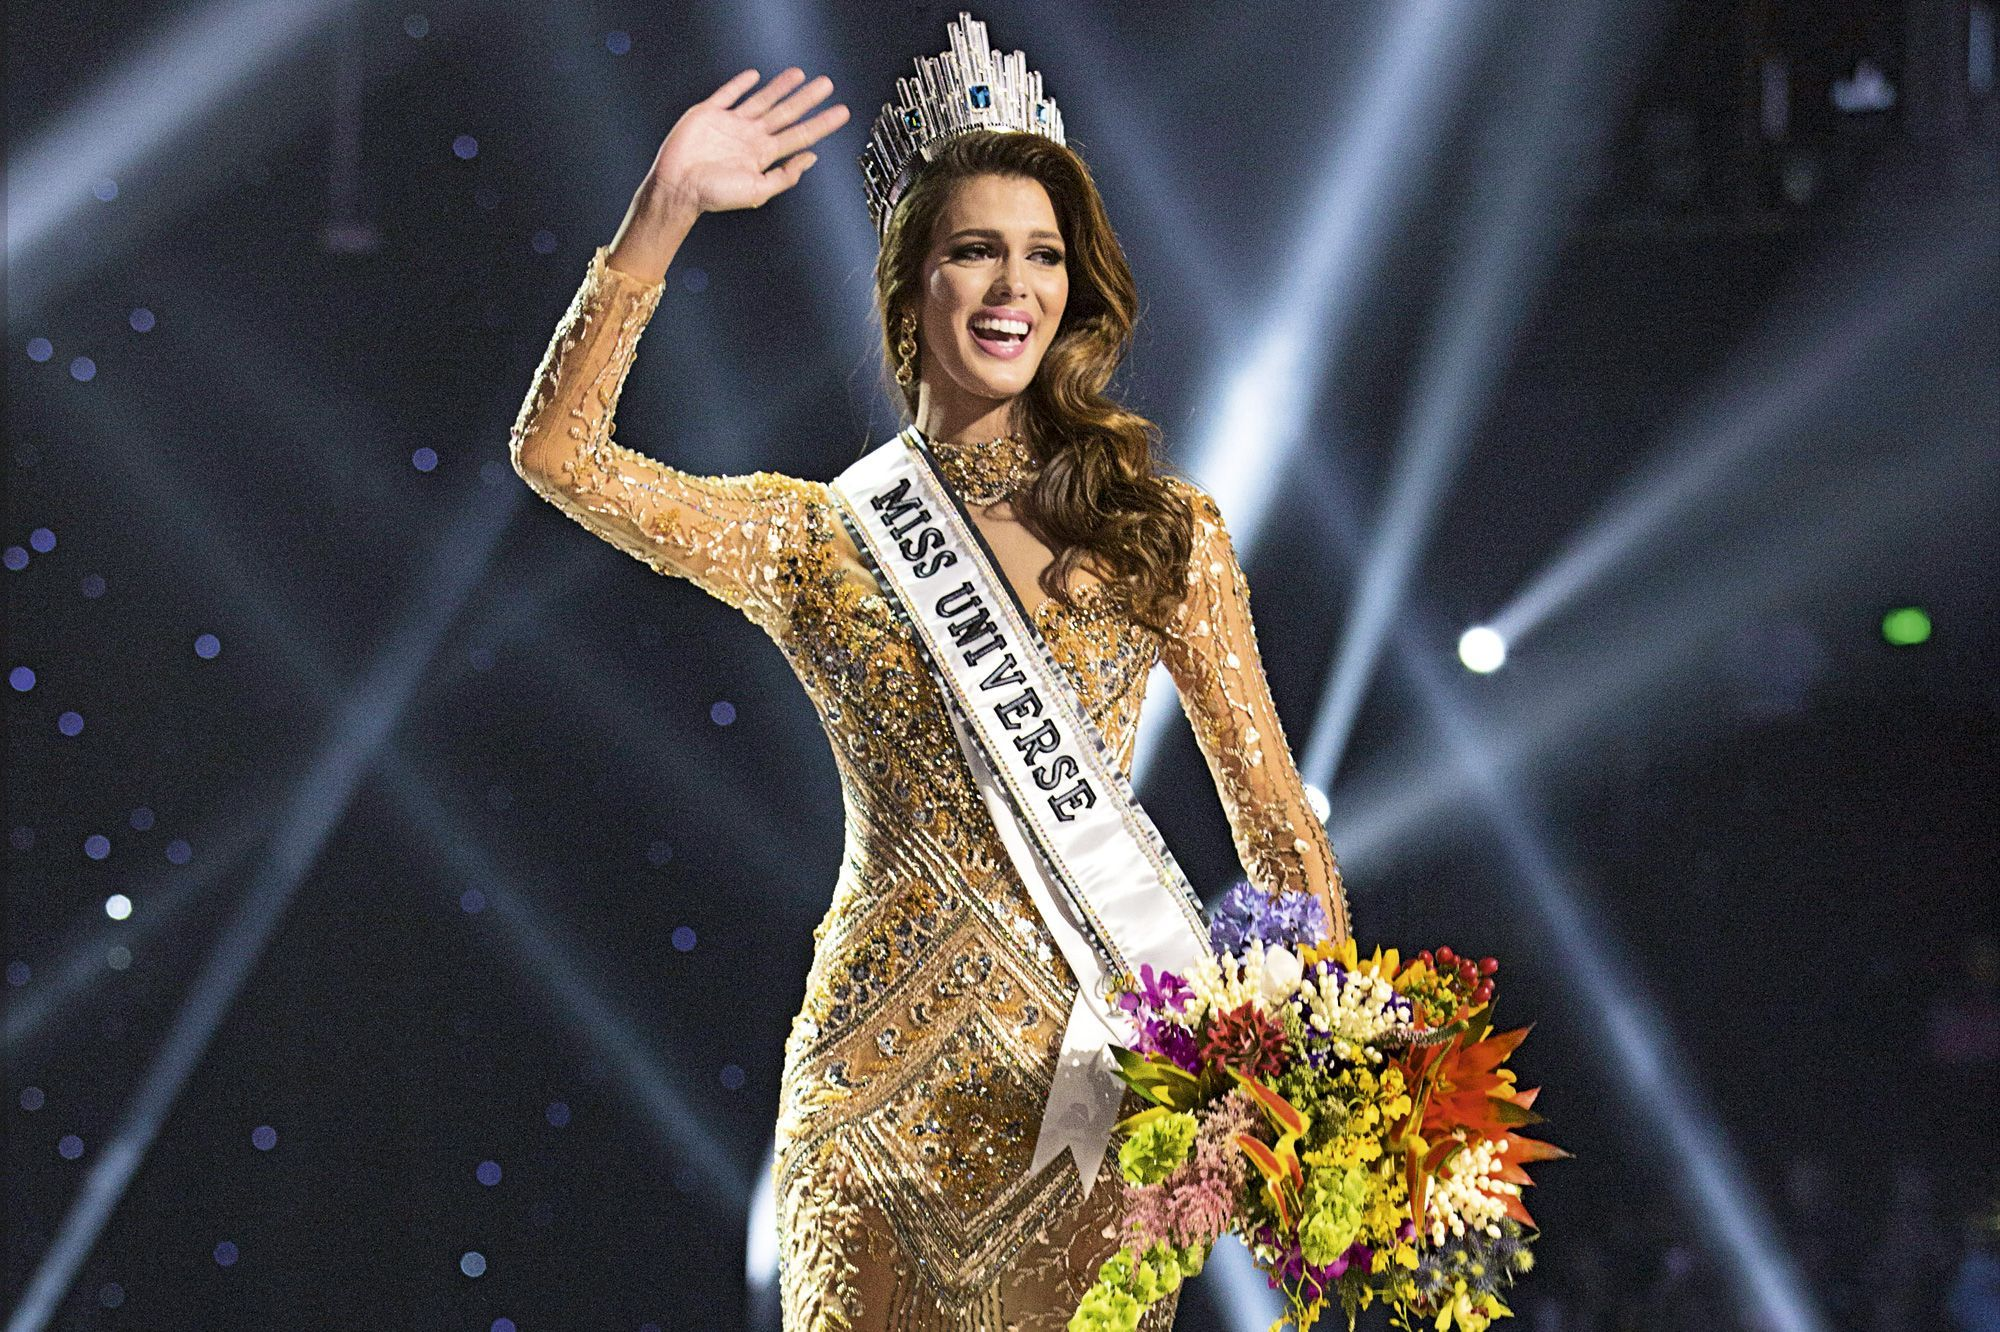 Miss universe 2019 date in Melbourne